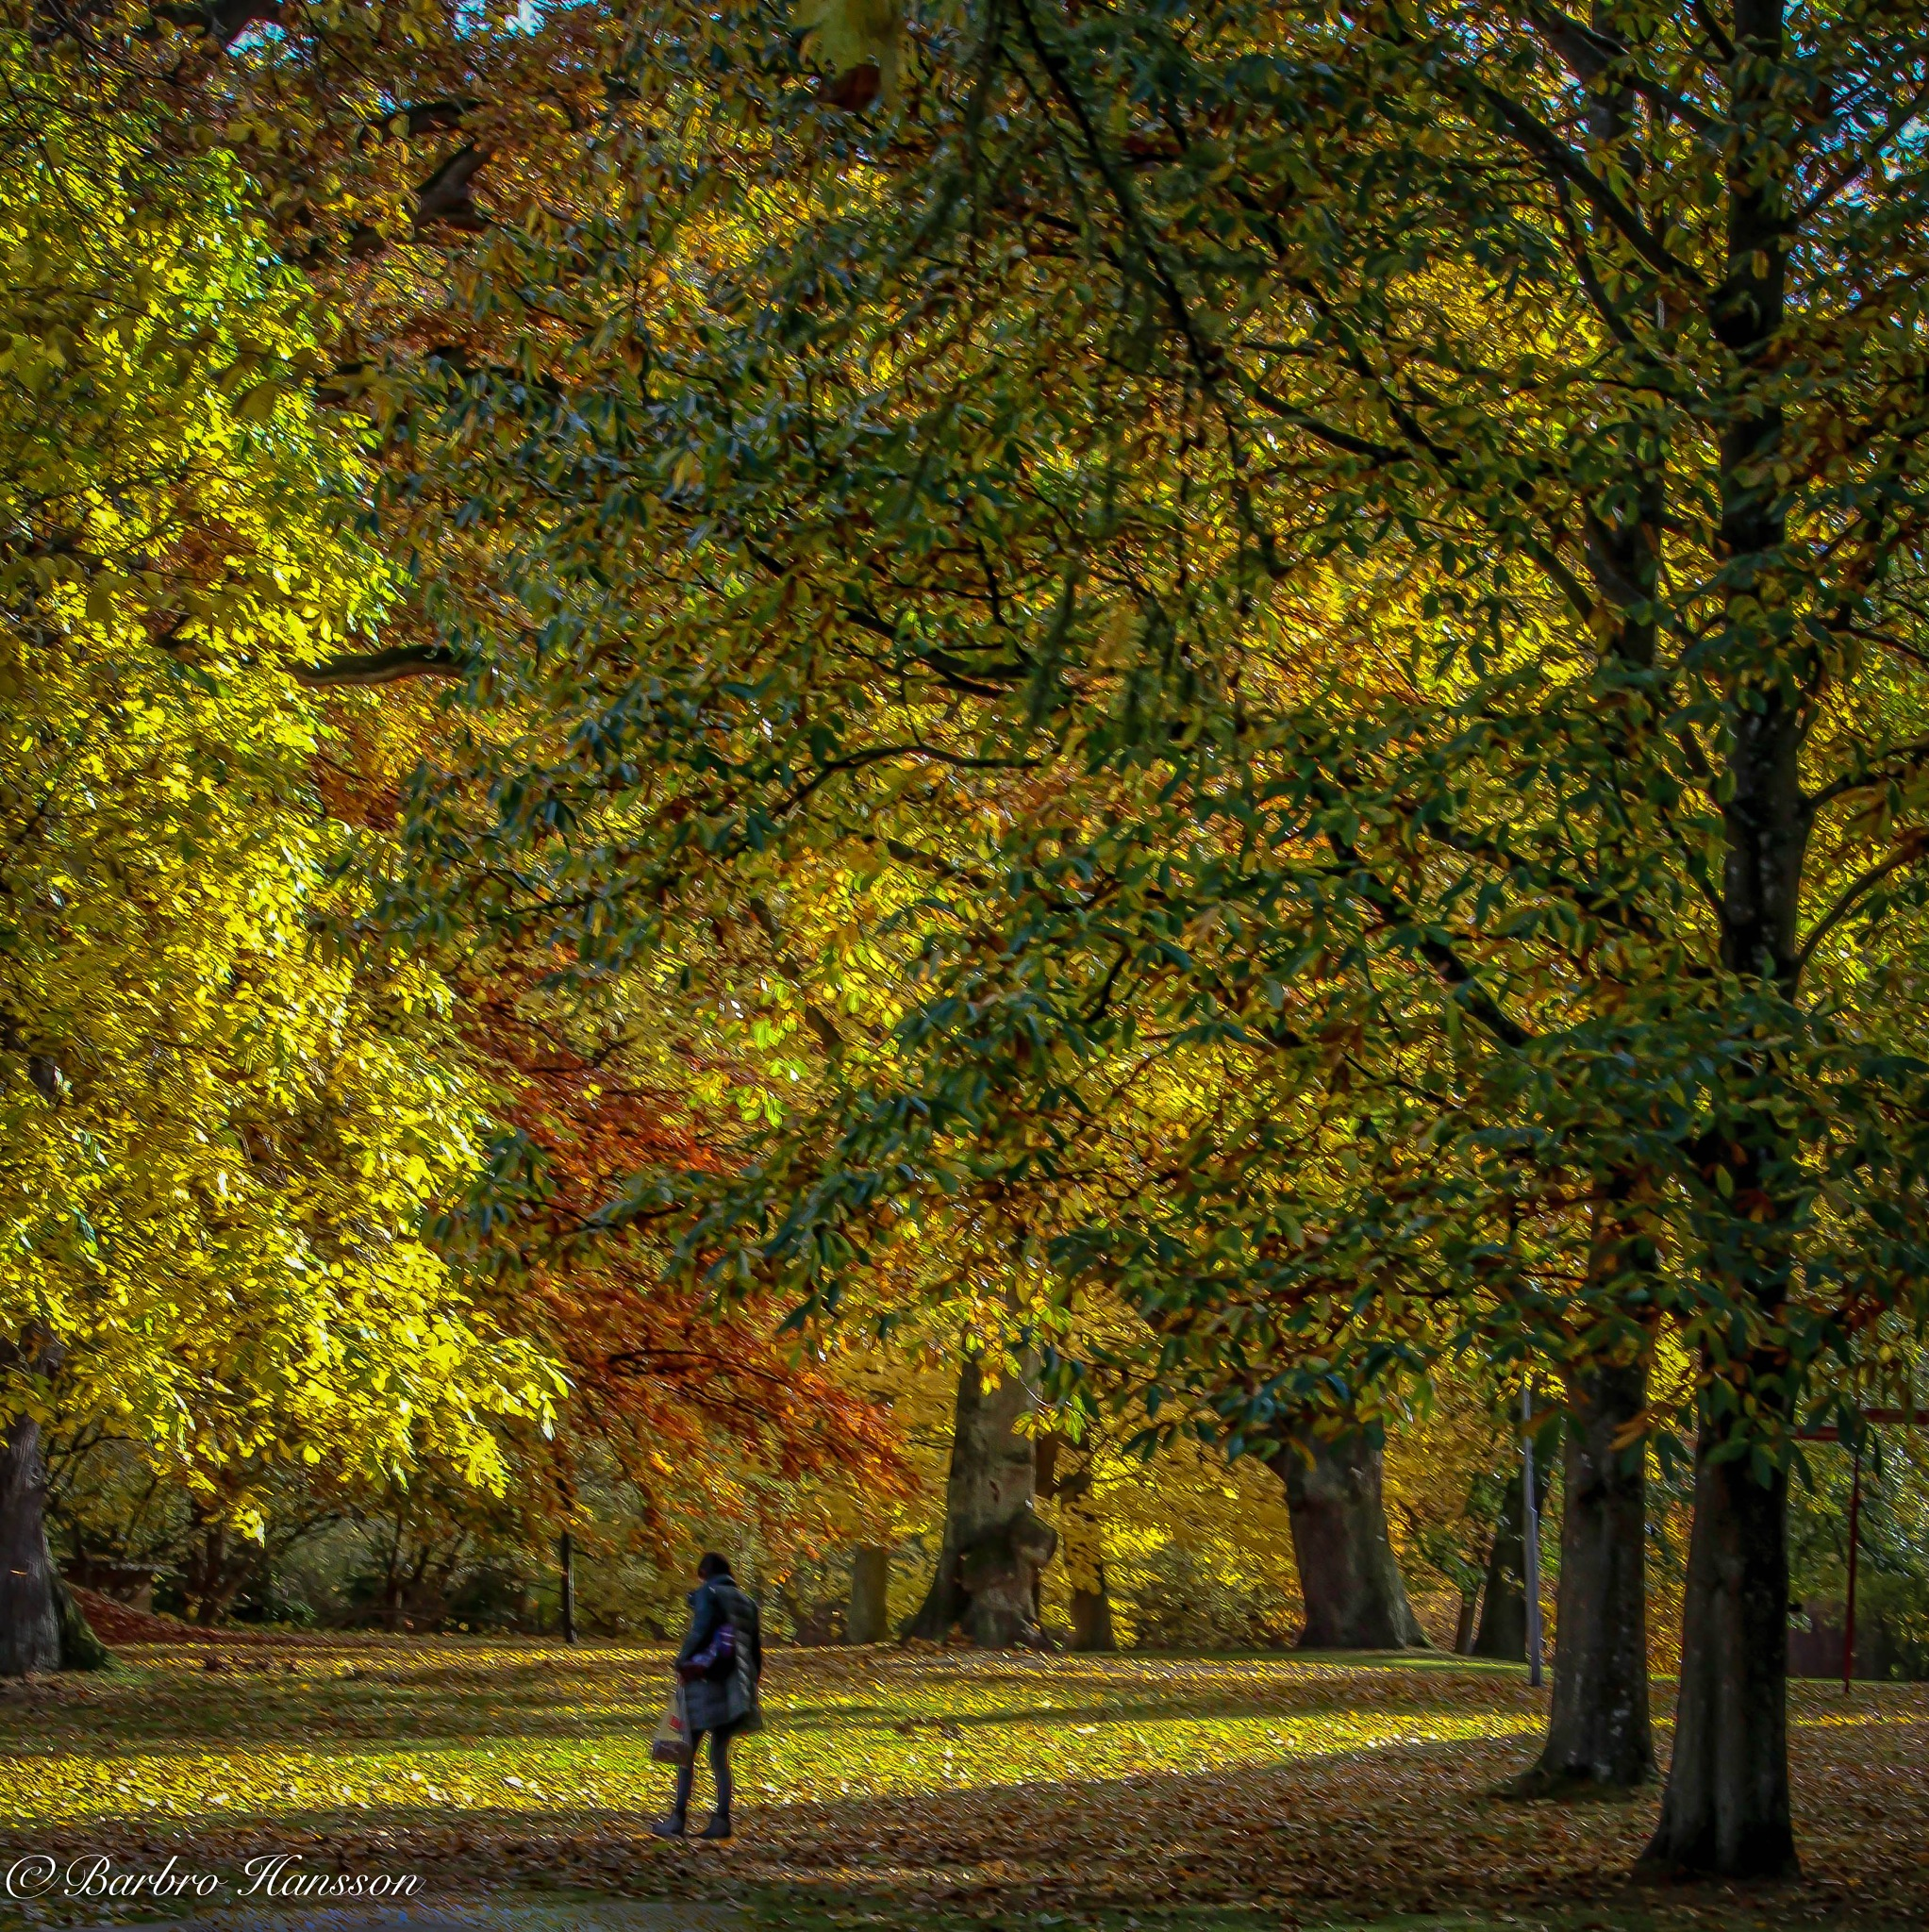 Autumn in the park by barbro.hansson.9